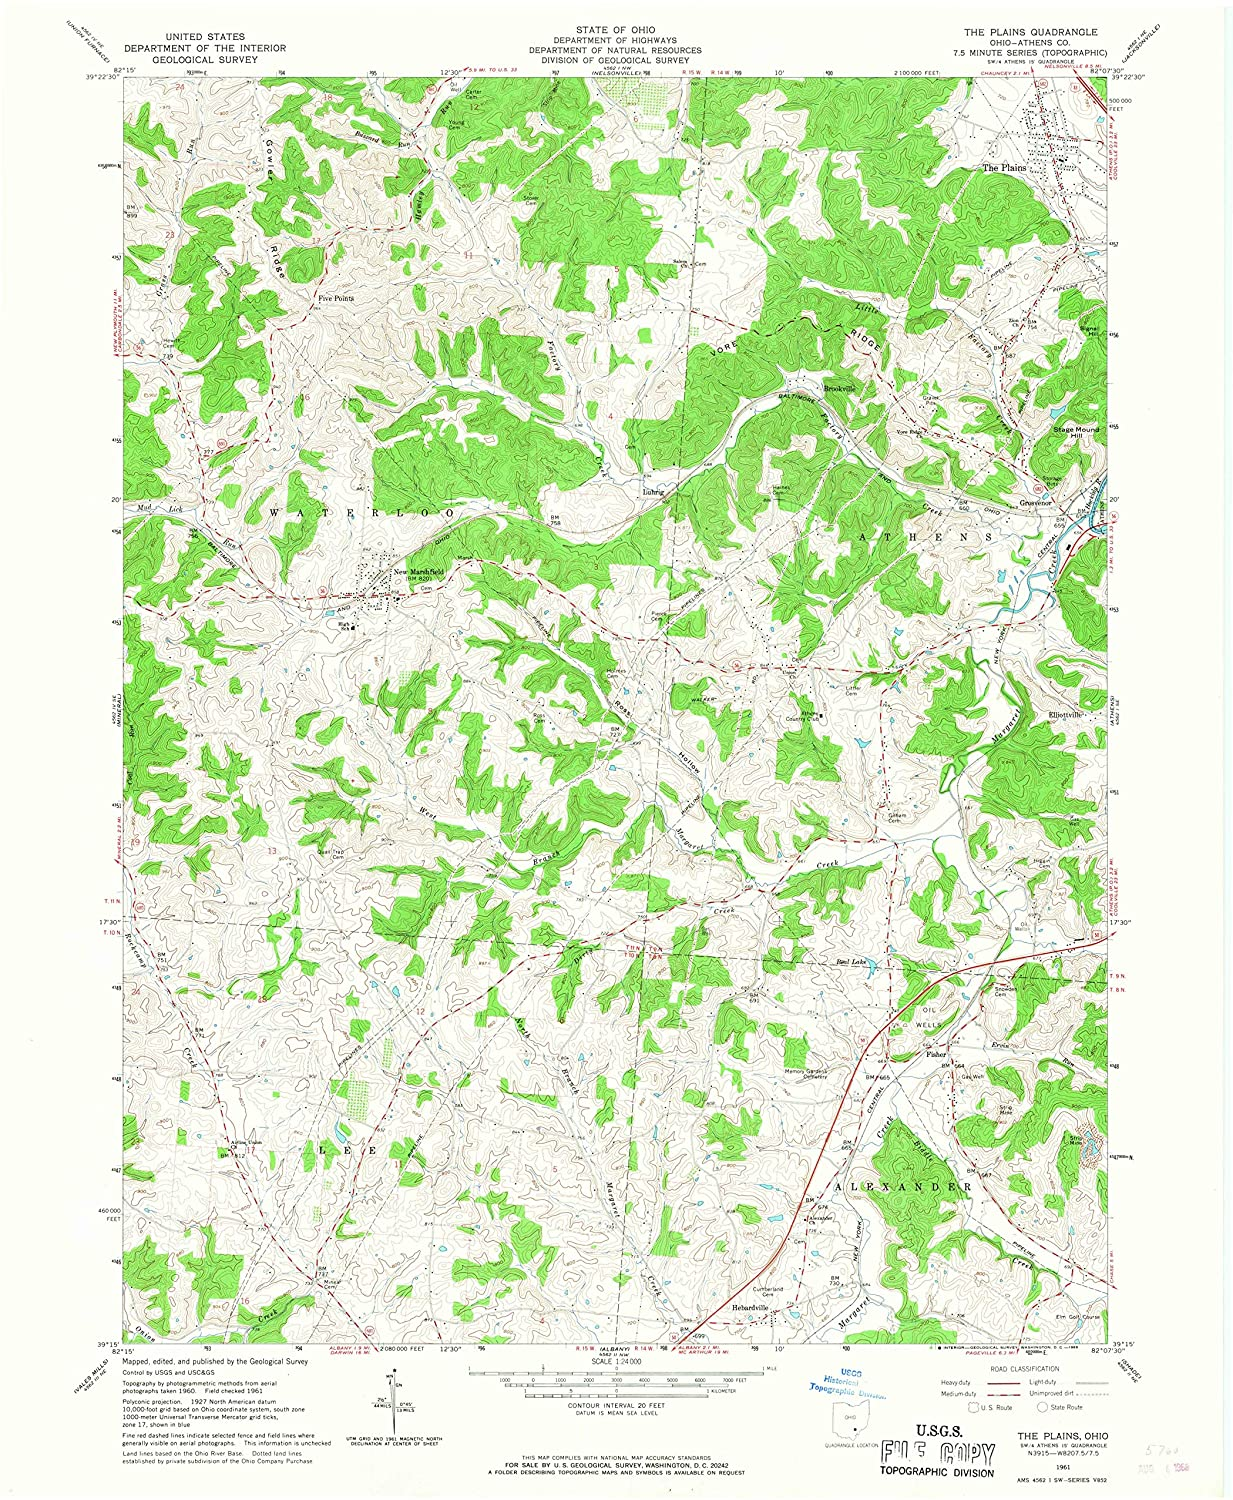 Map Print - The Plains, Ohio (1961), 1:24000 Scale - 24